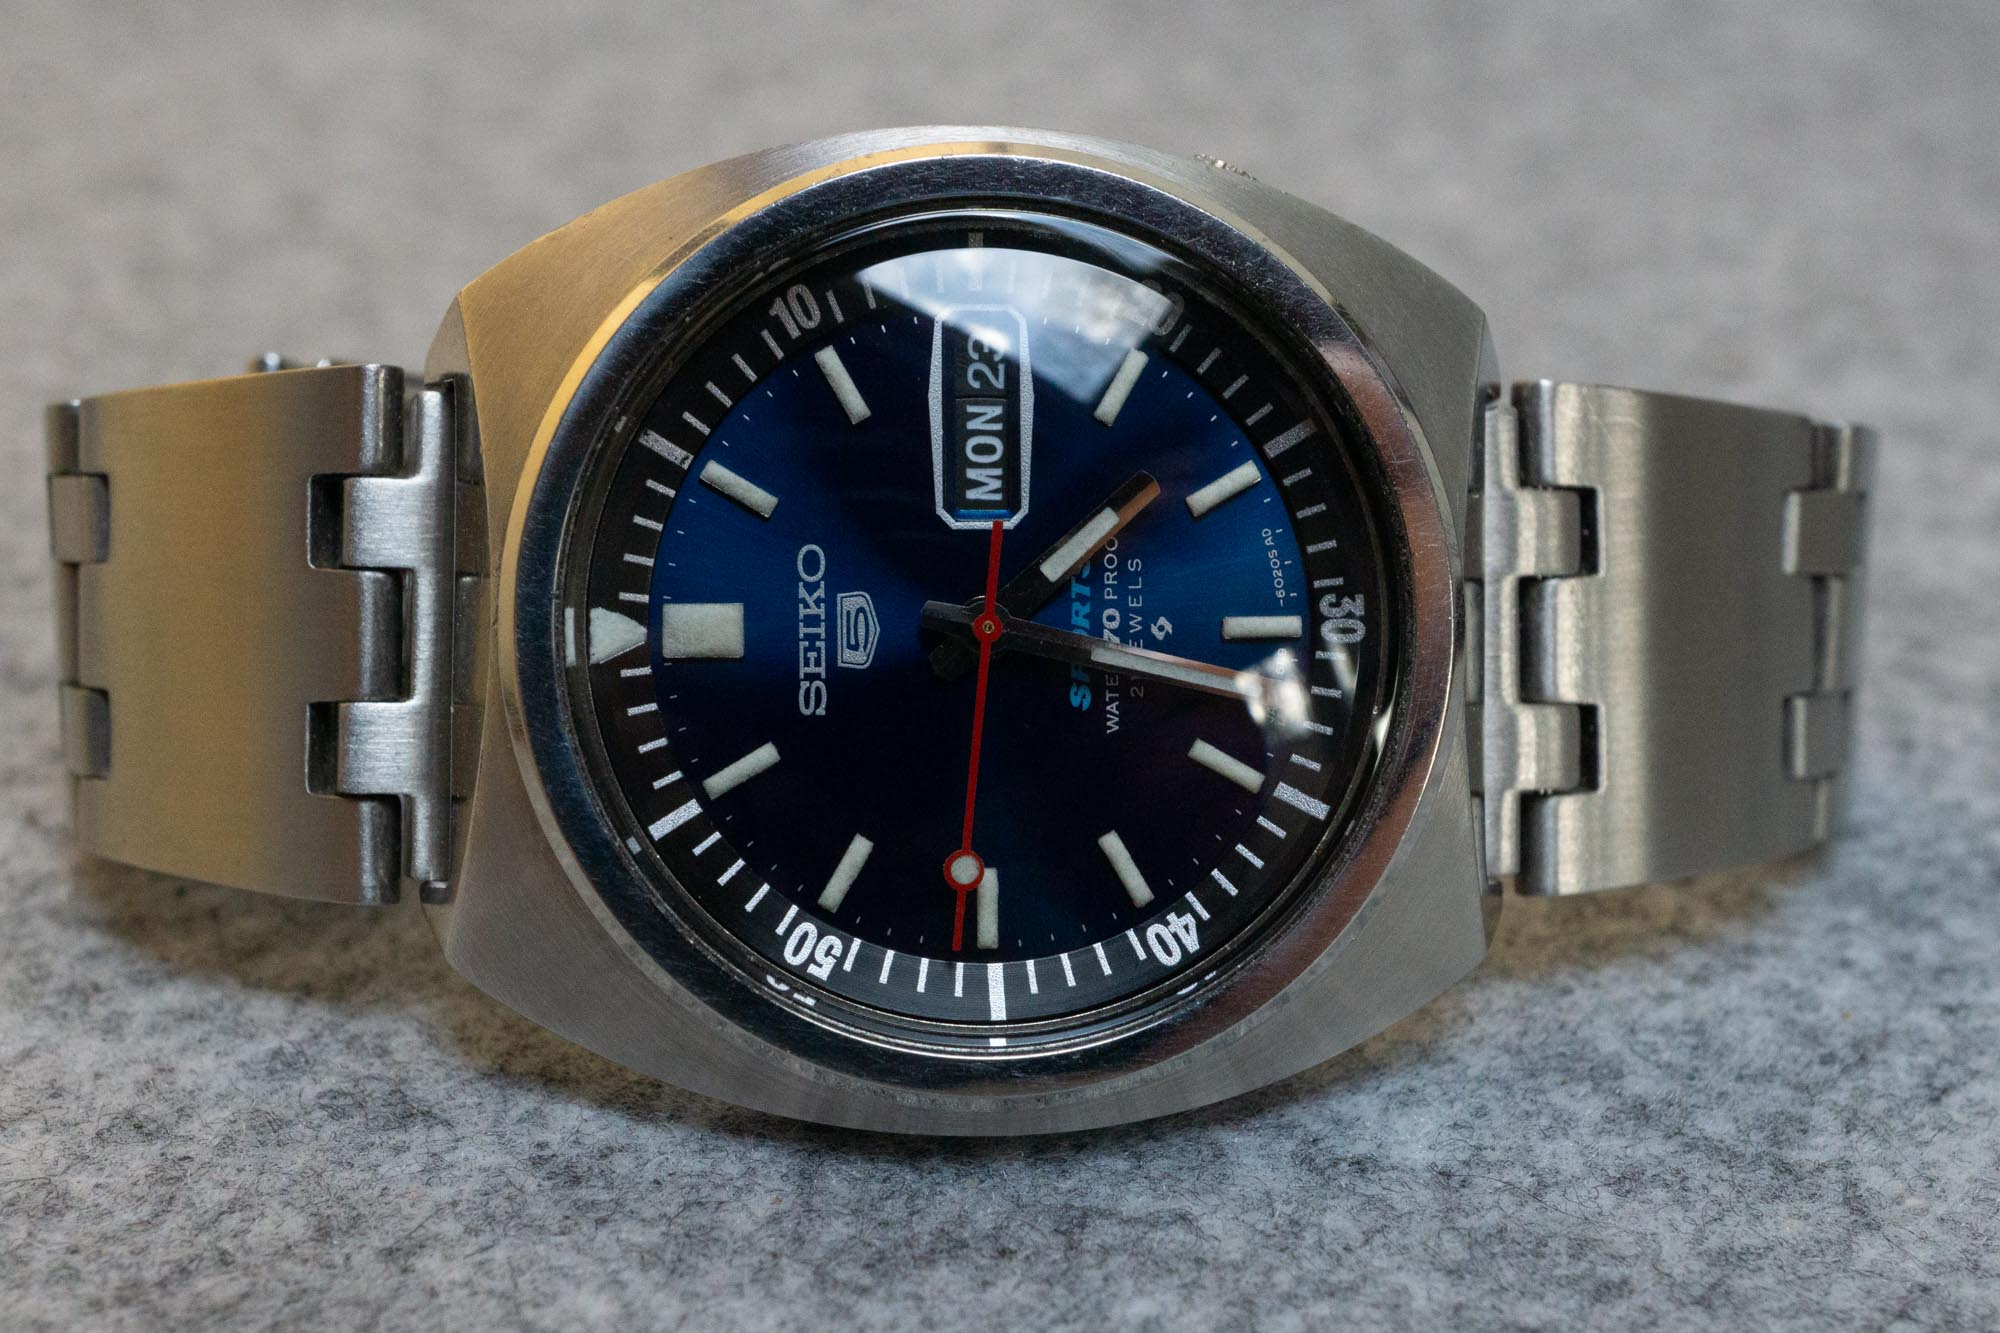 Hands-On Review – Uncle Seiko Vintage Straps